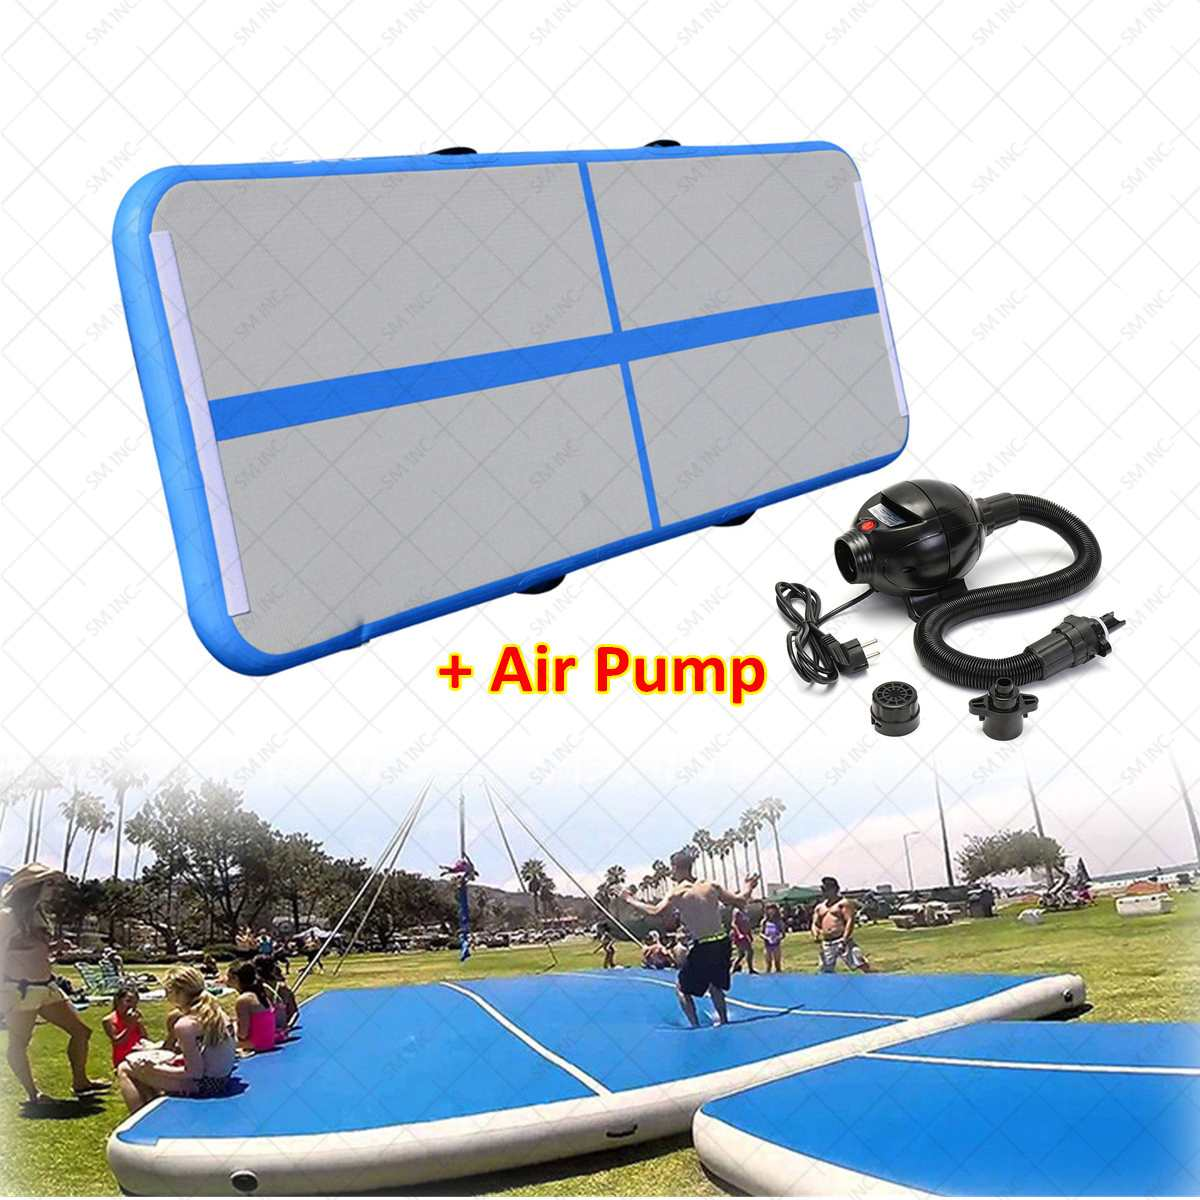 GoFun AirTrack Inflatable Gymnastics Tumbling Air Track Floor Trampoline Electric Air Pump for Home Use/Training/Cheerleading